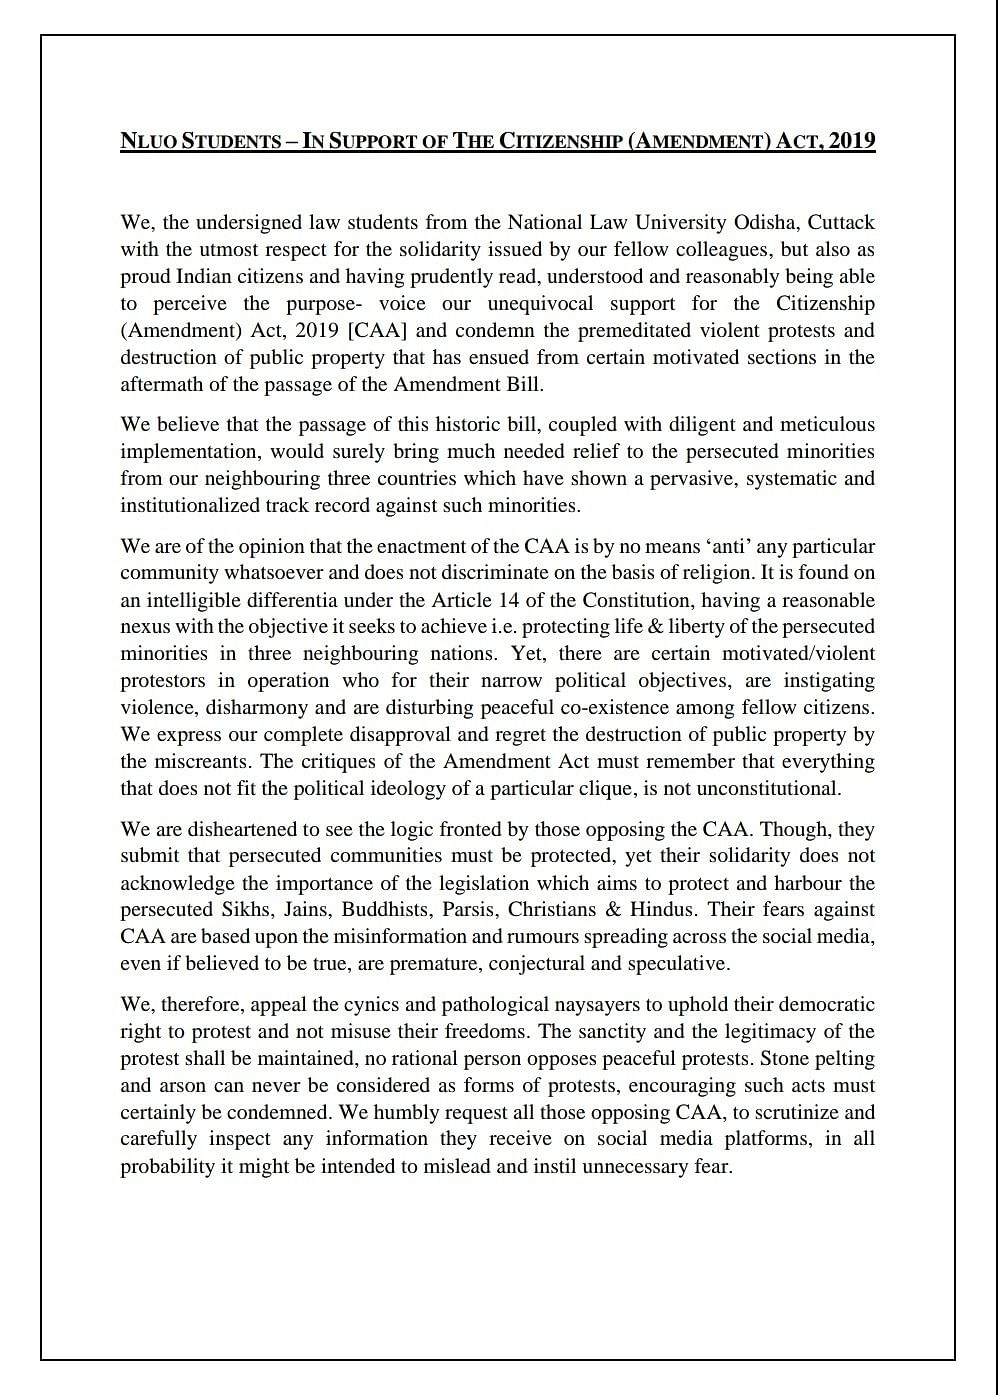 NLU O statement in support of CAA